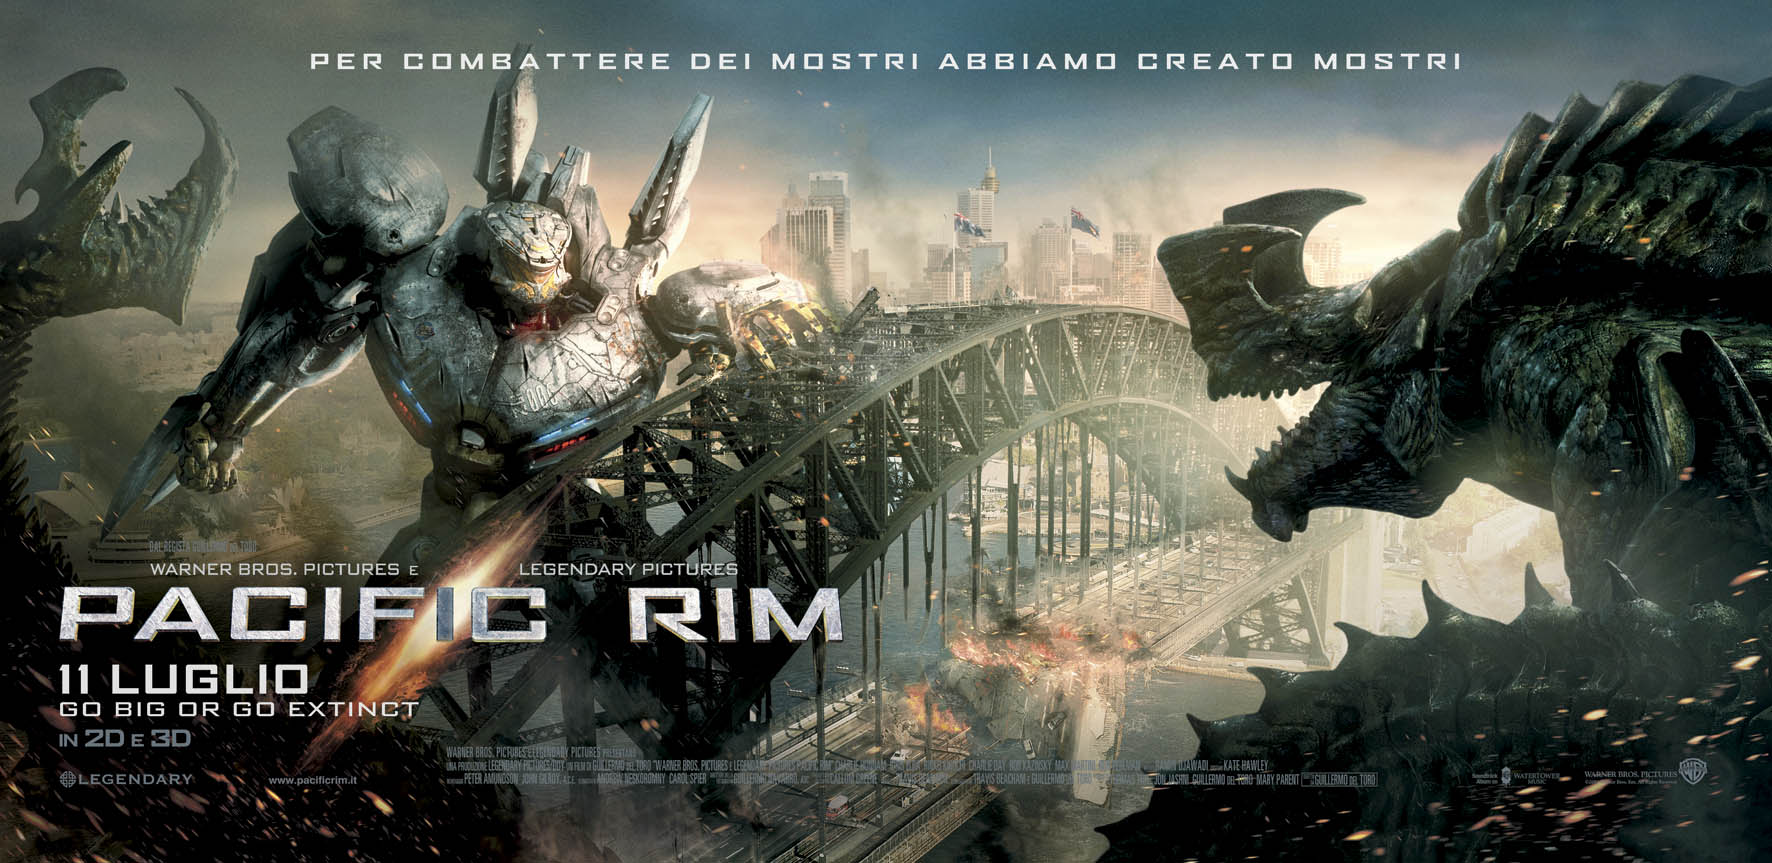 Pacific Rim Artwork 2